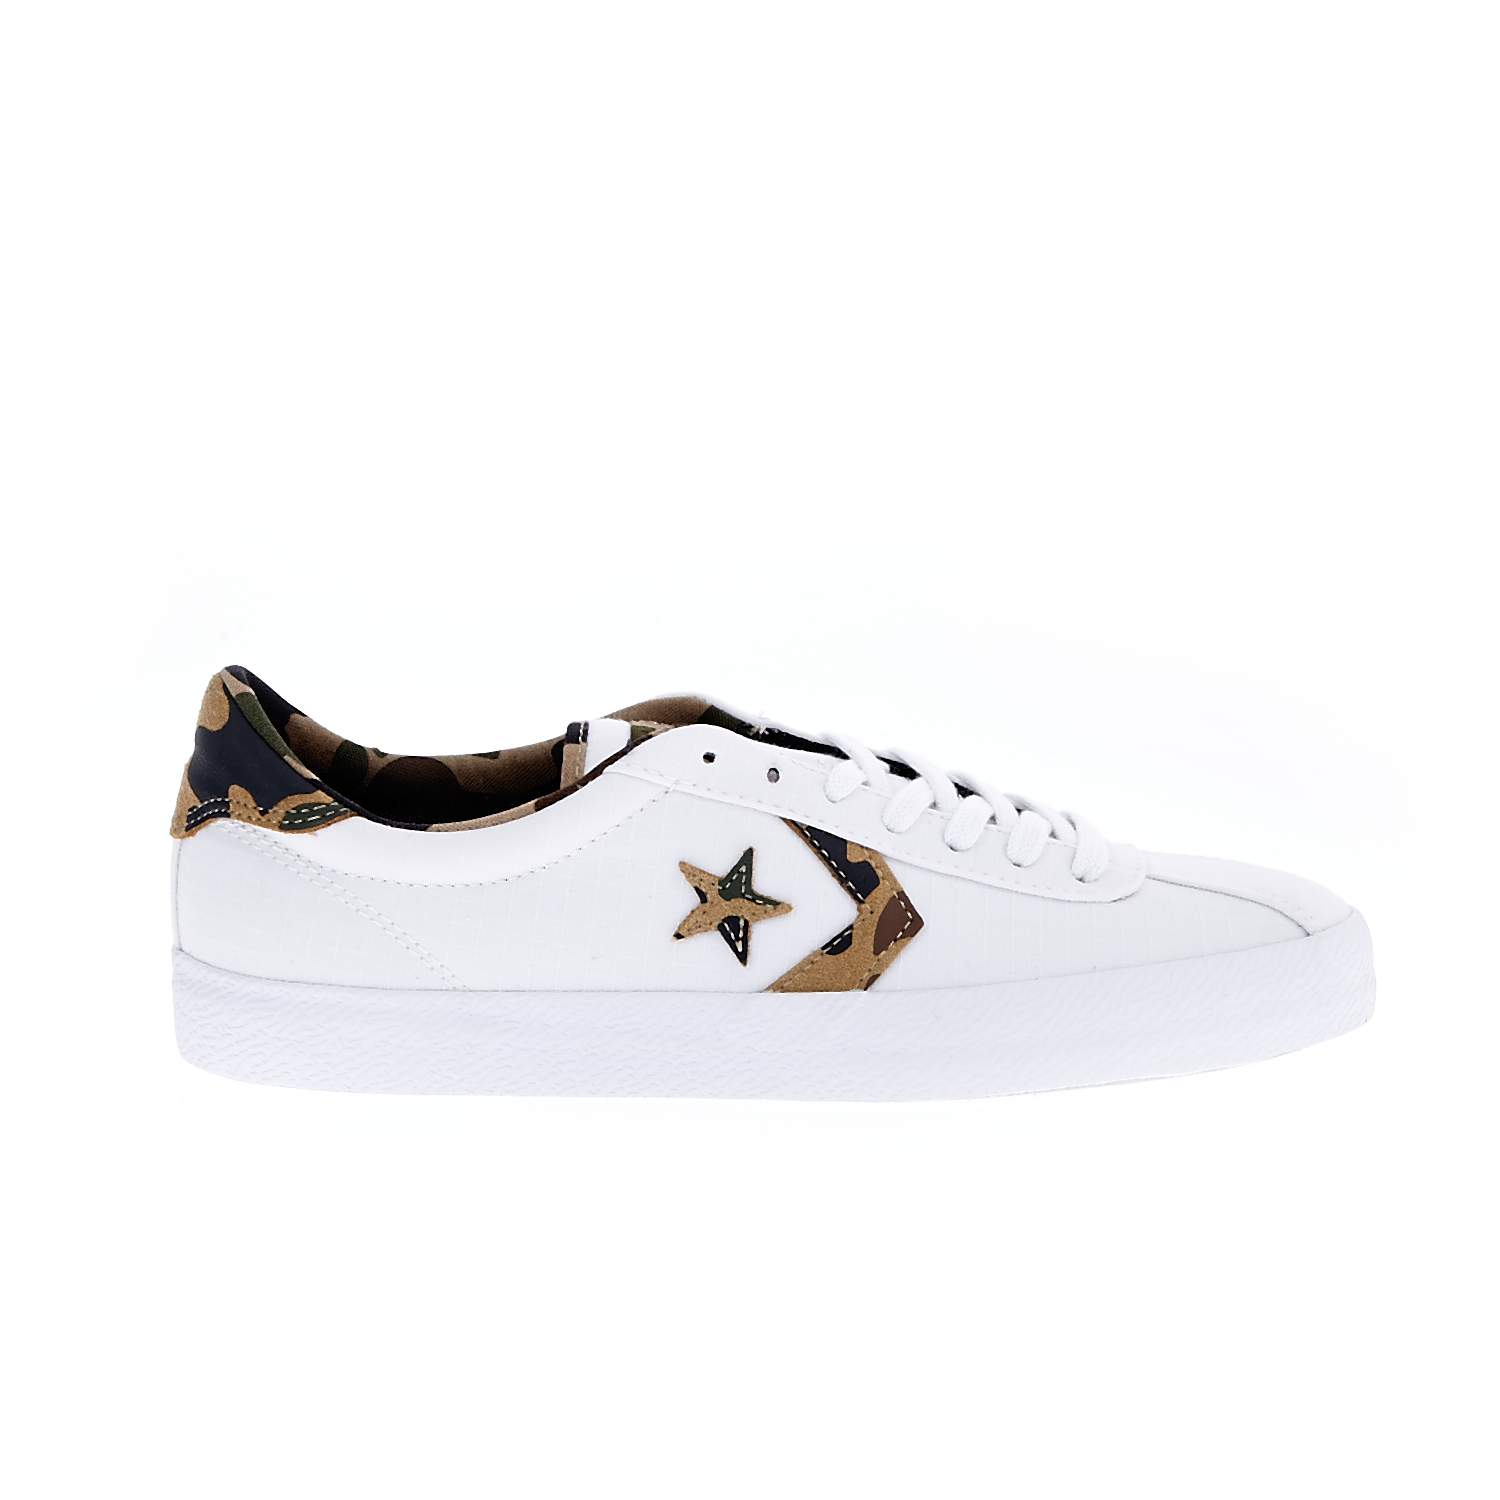 CONVERSE – Unisex παπούτσια Breakpoint Ox λευκά